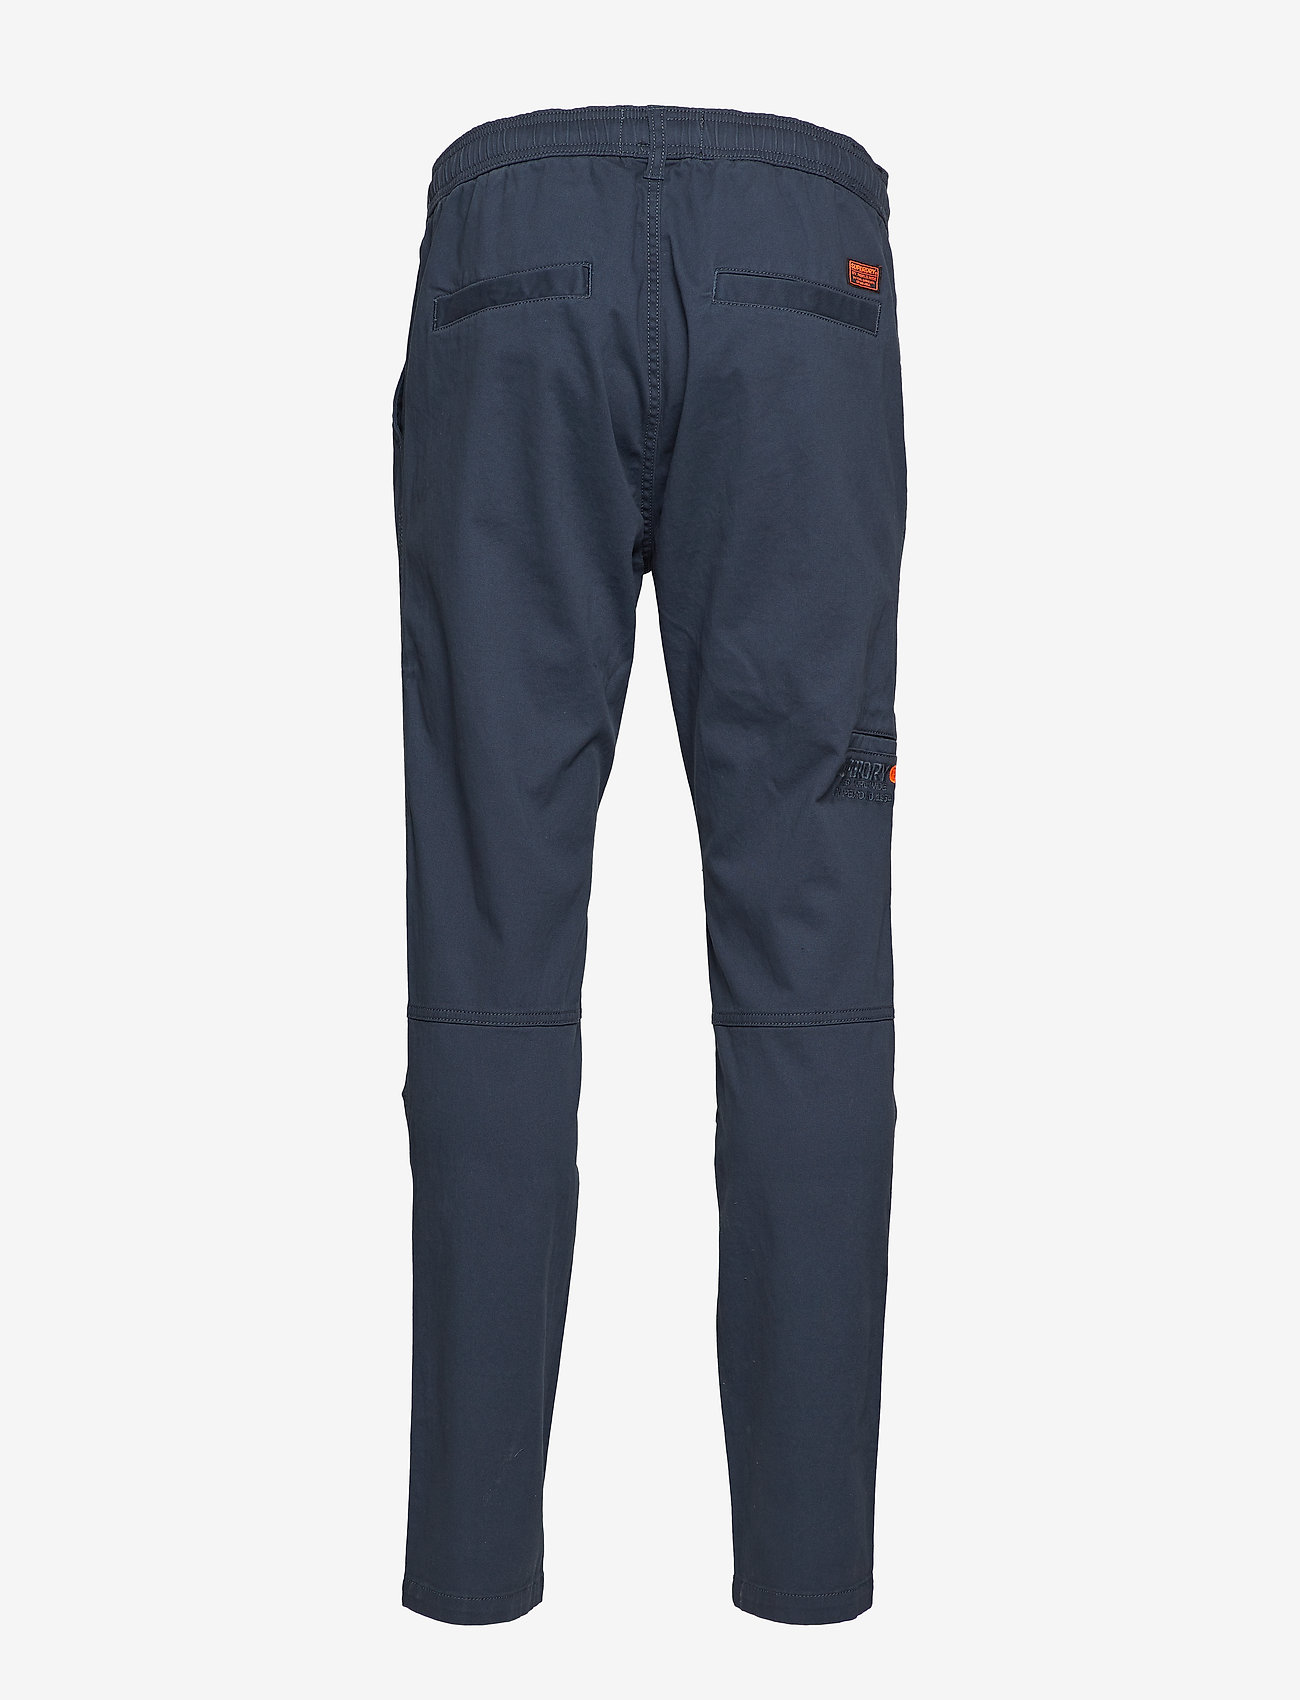 Superdry - CORE UTILITY PANT - bojówki - drift blue - 1